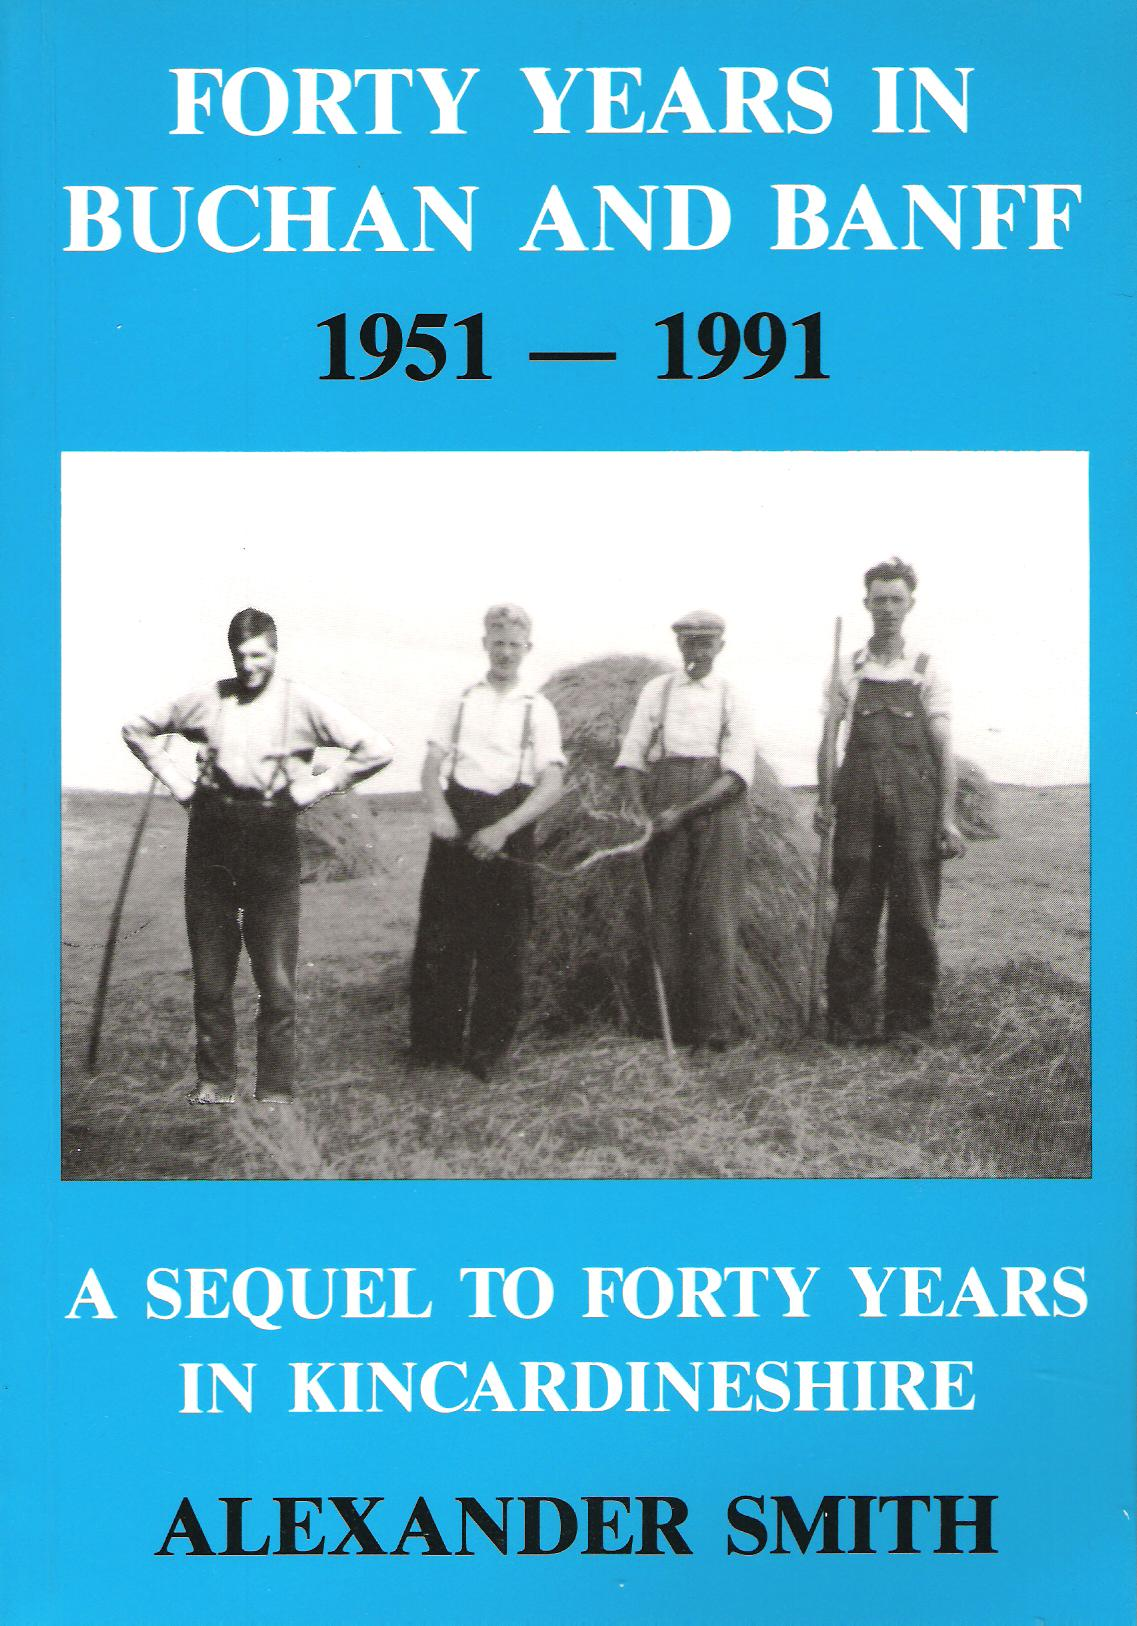 Image for Forty Years in Buchan and Banff 1951-1991: A Sequel to Forty Years in Kincardineshire.